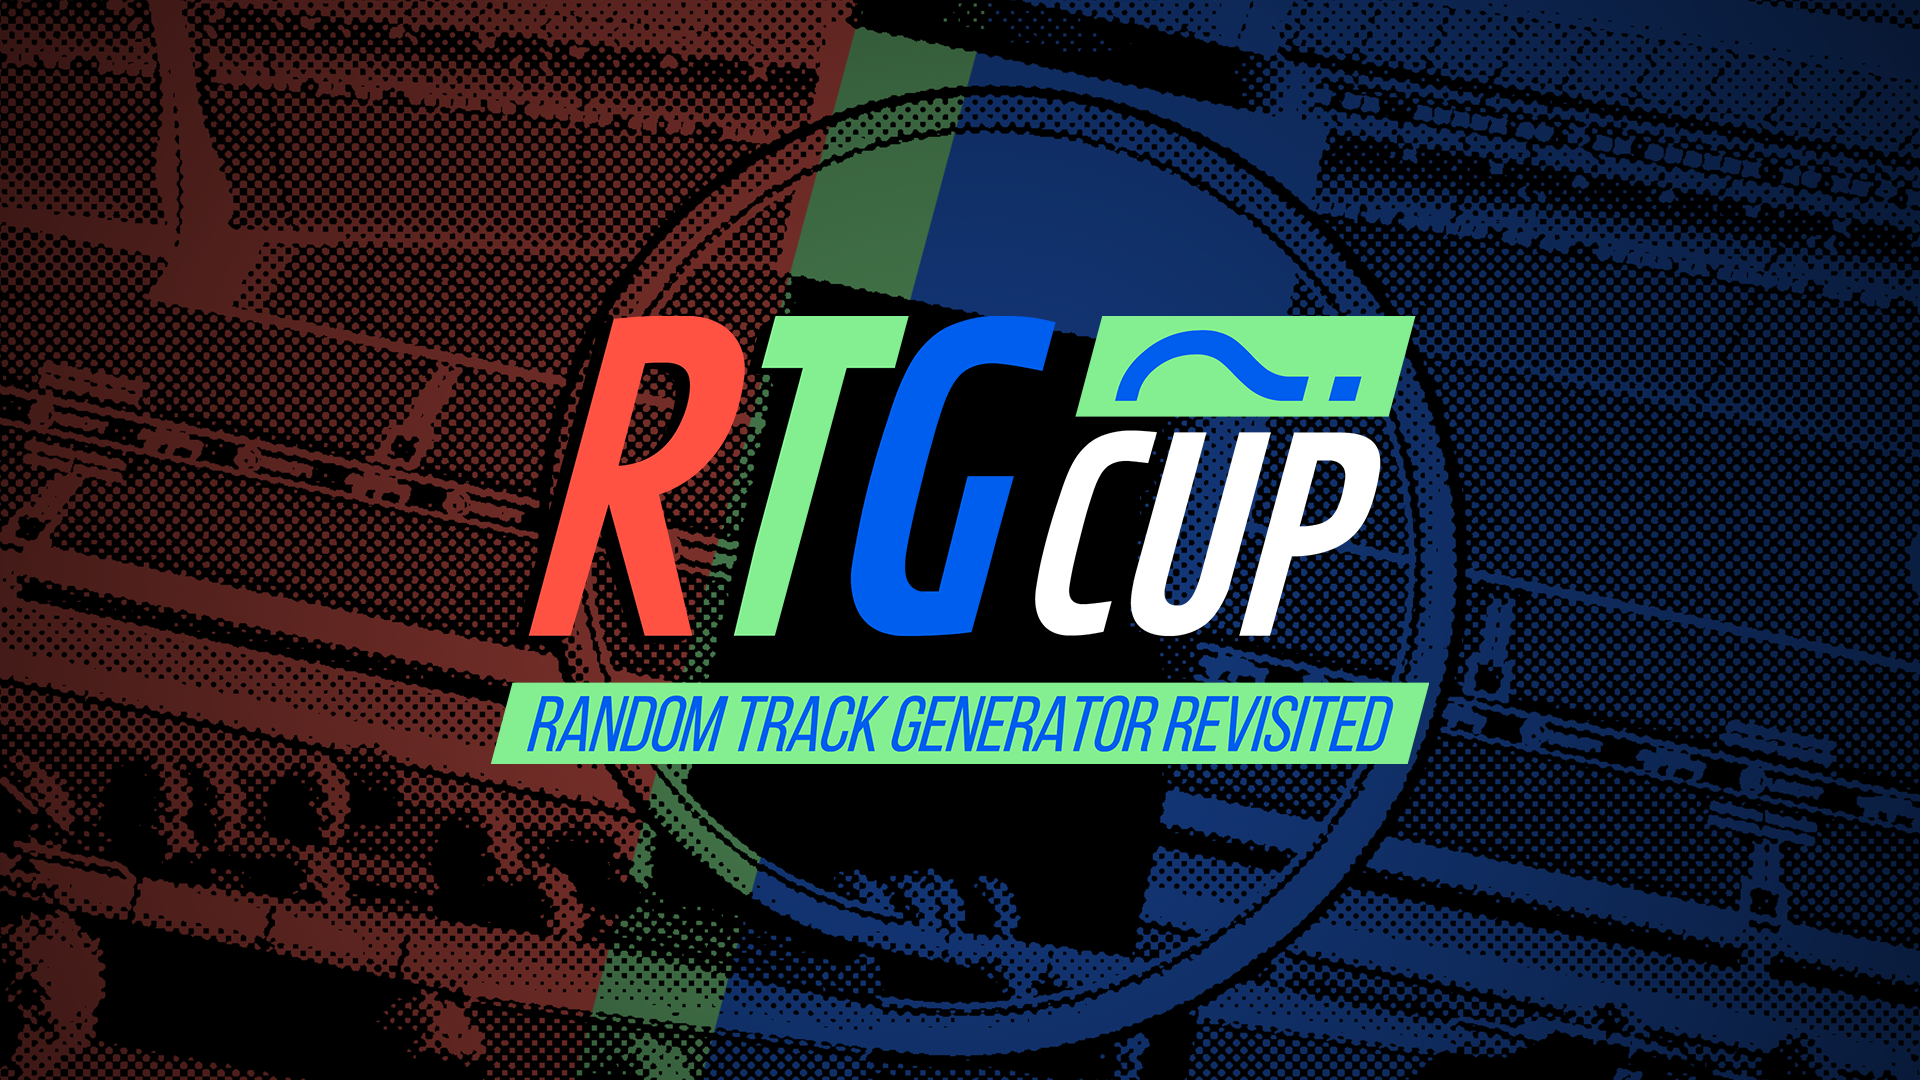 RTG Cup